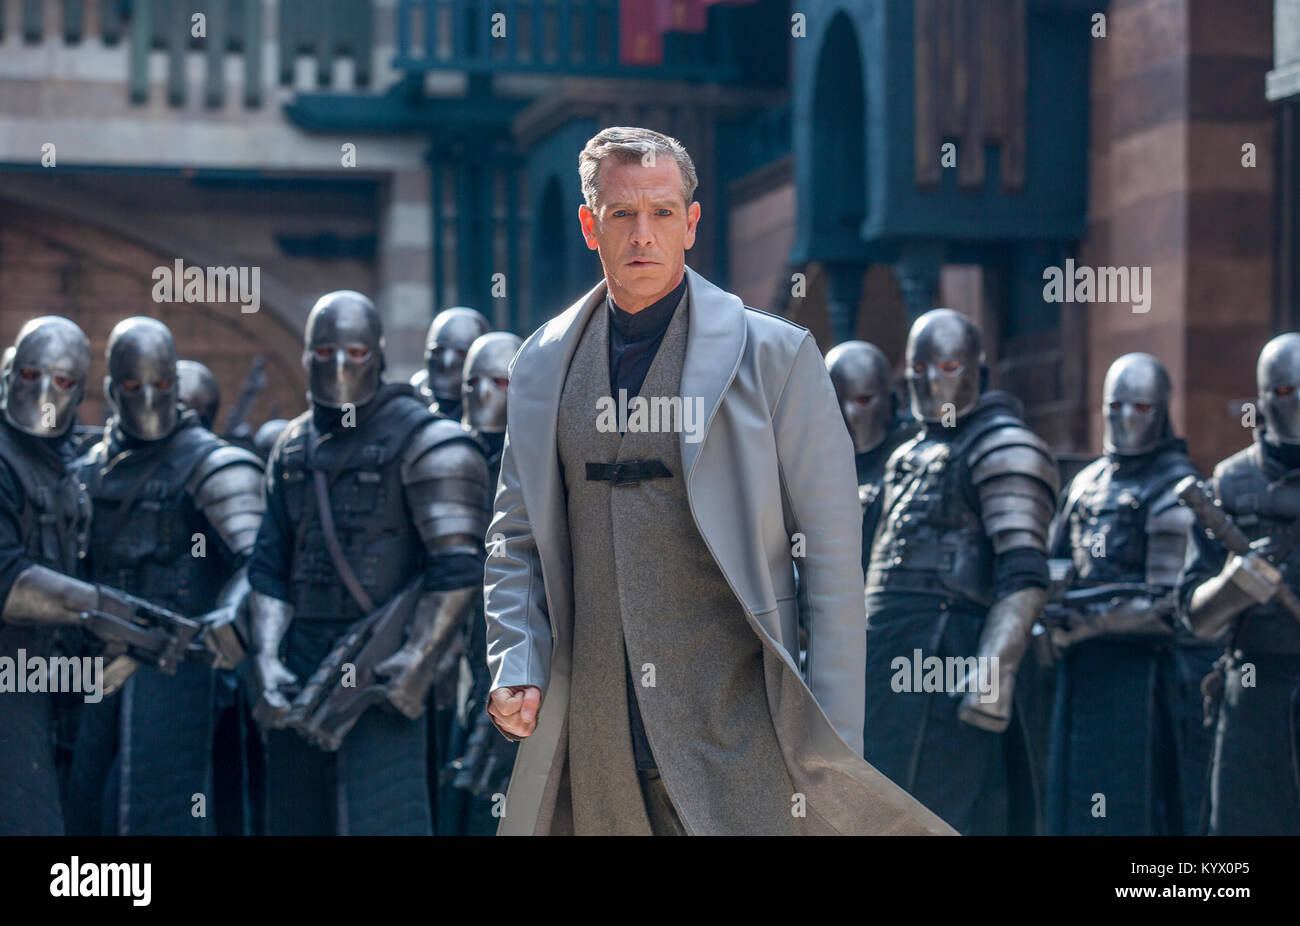 RELEASE DATE: September 21, 2018 TITLE: Robin Hood STUDIO: Lionsgate DIRECTOR: Otto Bathurst PLOT: A gritty take - Stock Image